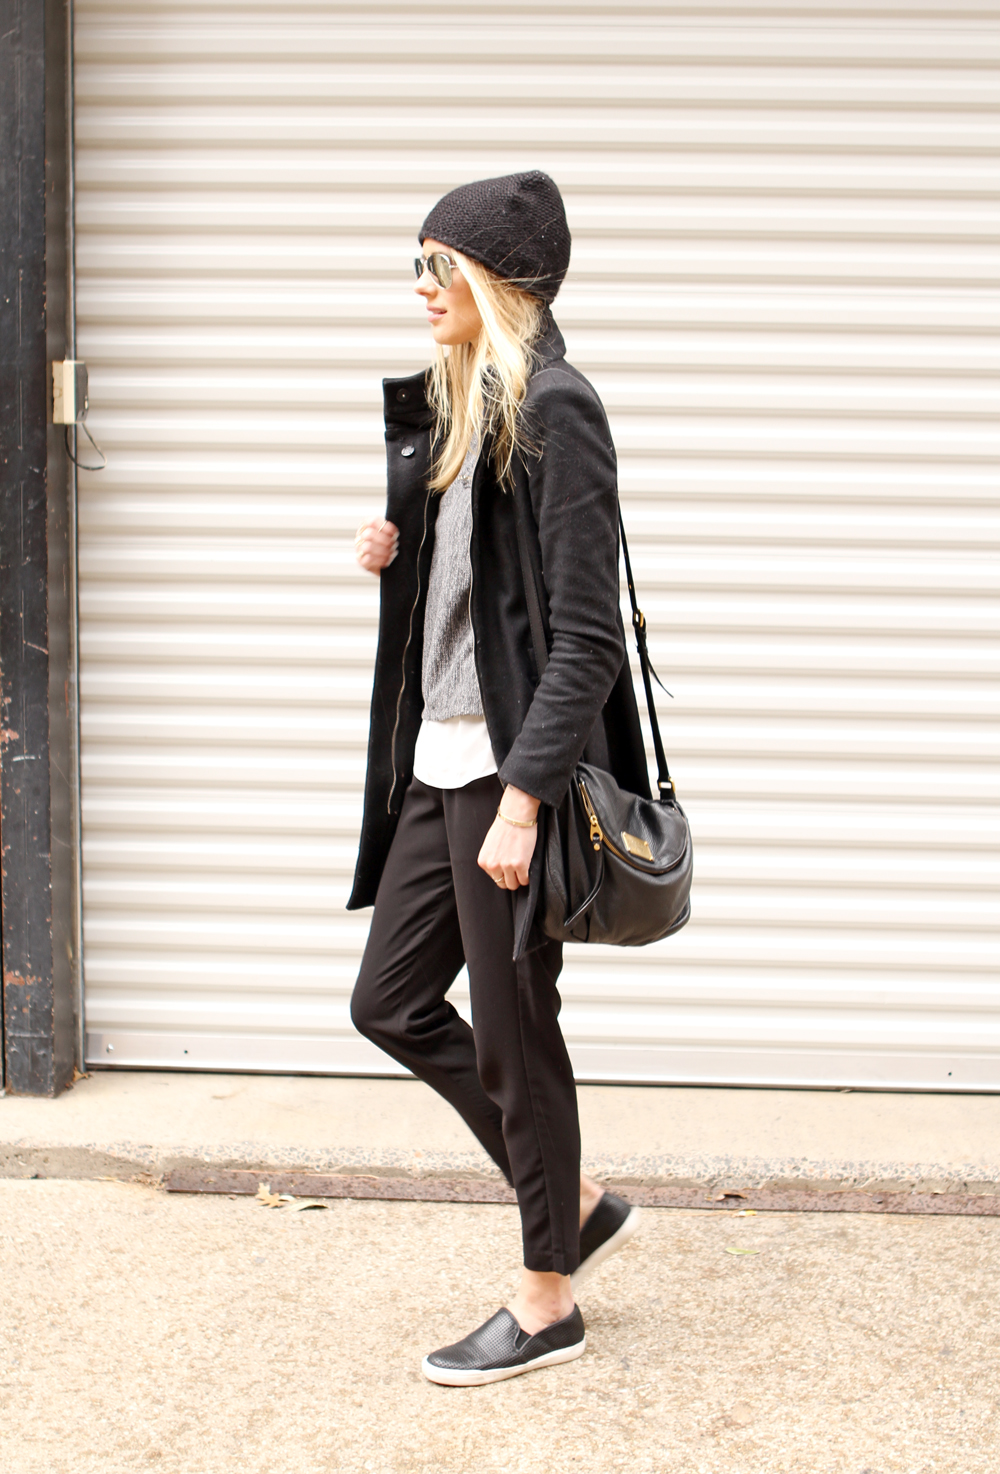 3a0efcf1 Amy Jackson is wearing a black jacket and beanie from Zara, grey top from  Goodnight